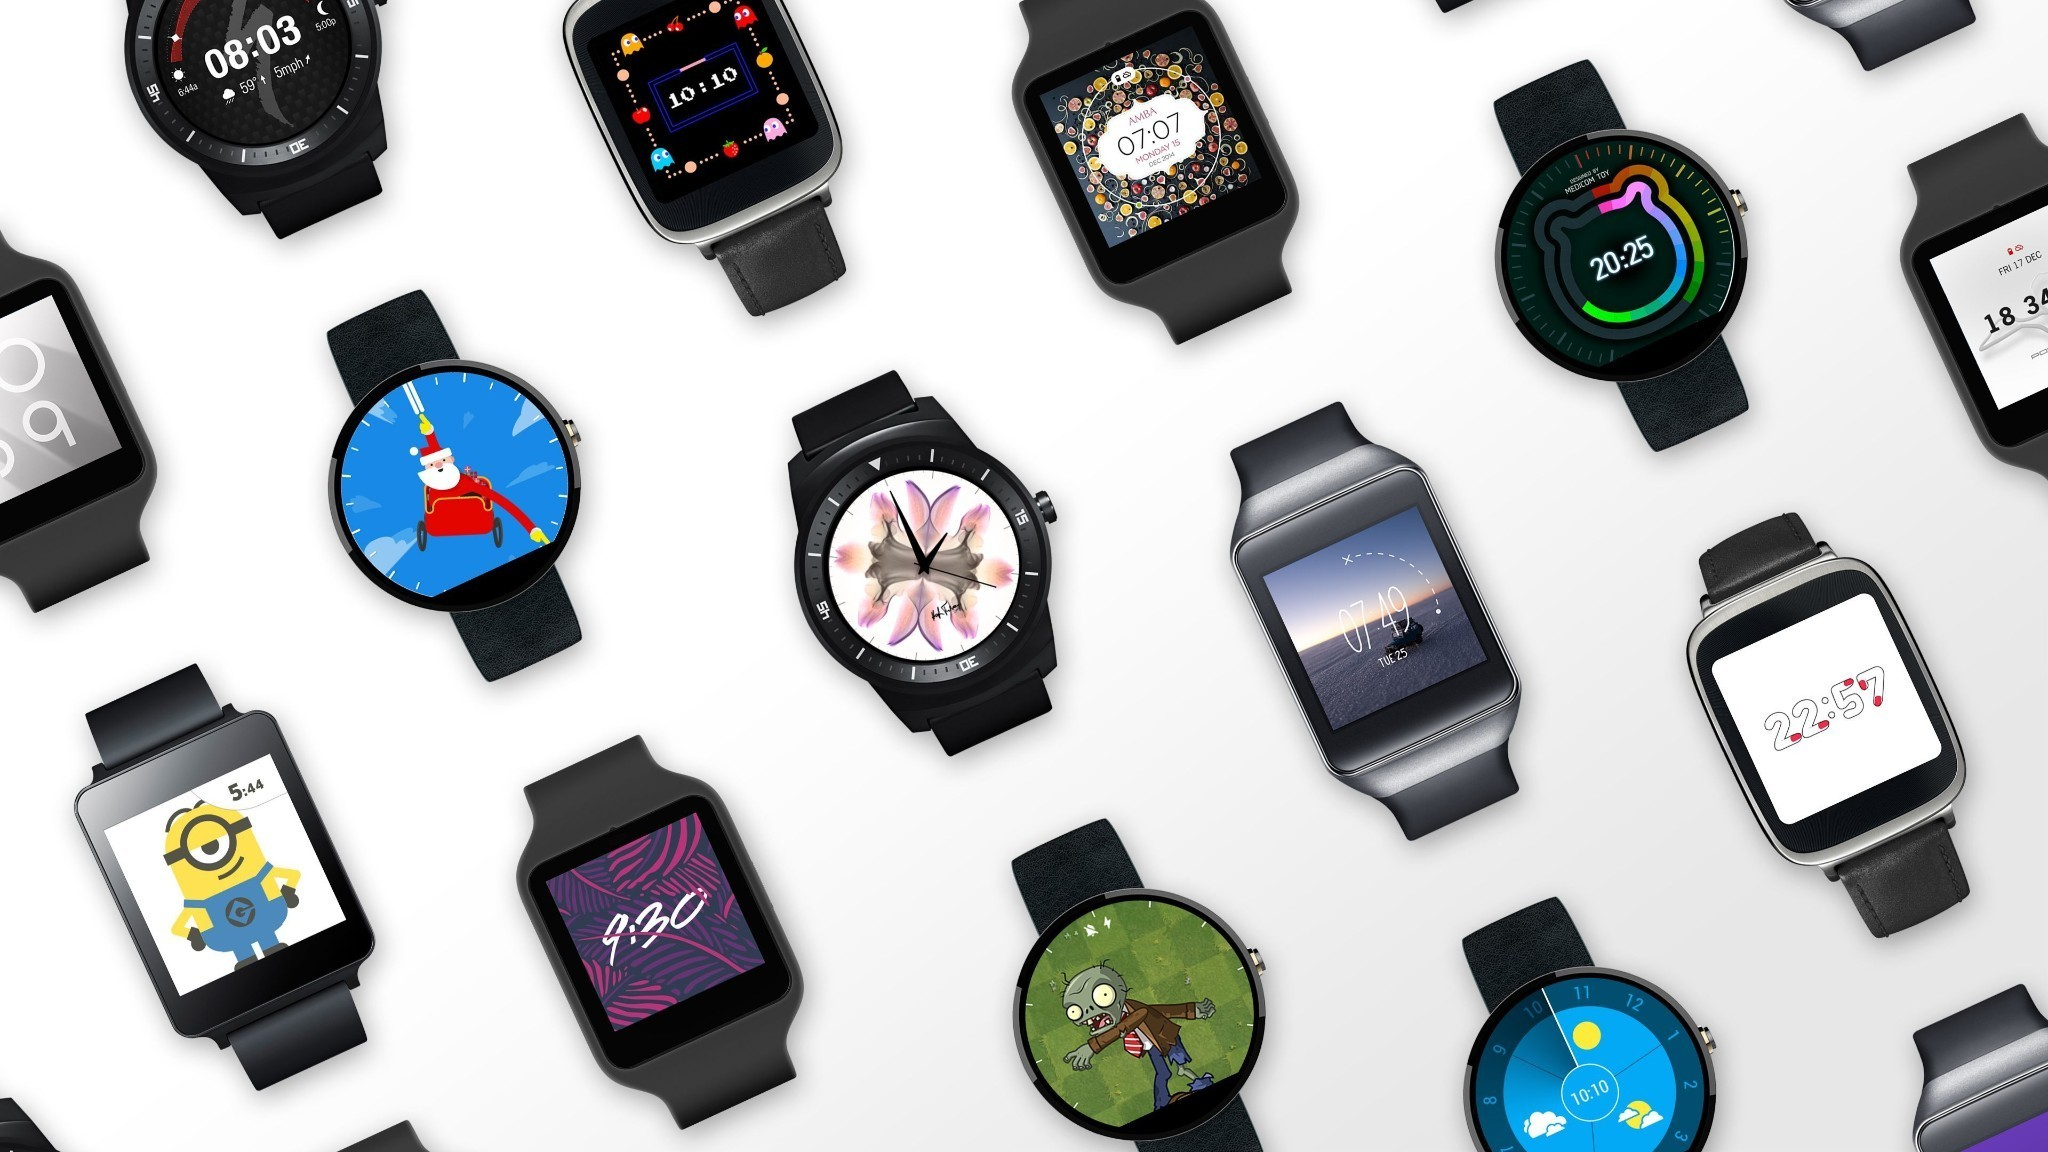 Report: Google preparing iOS app for Android Wear smartwatches